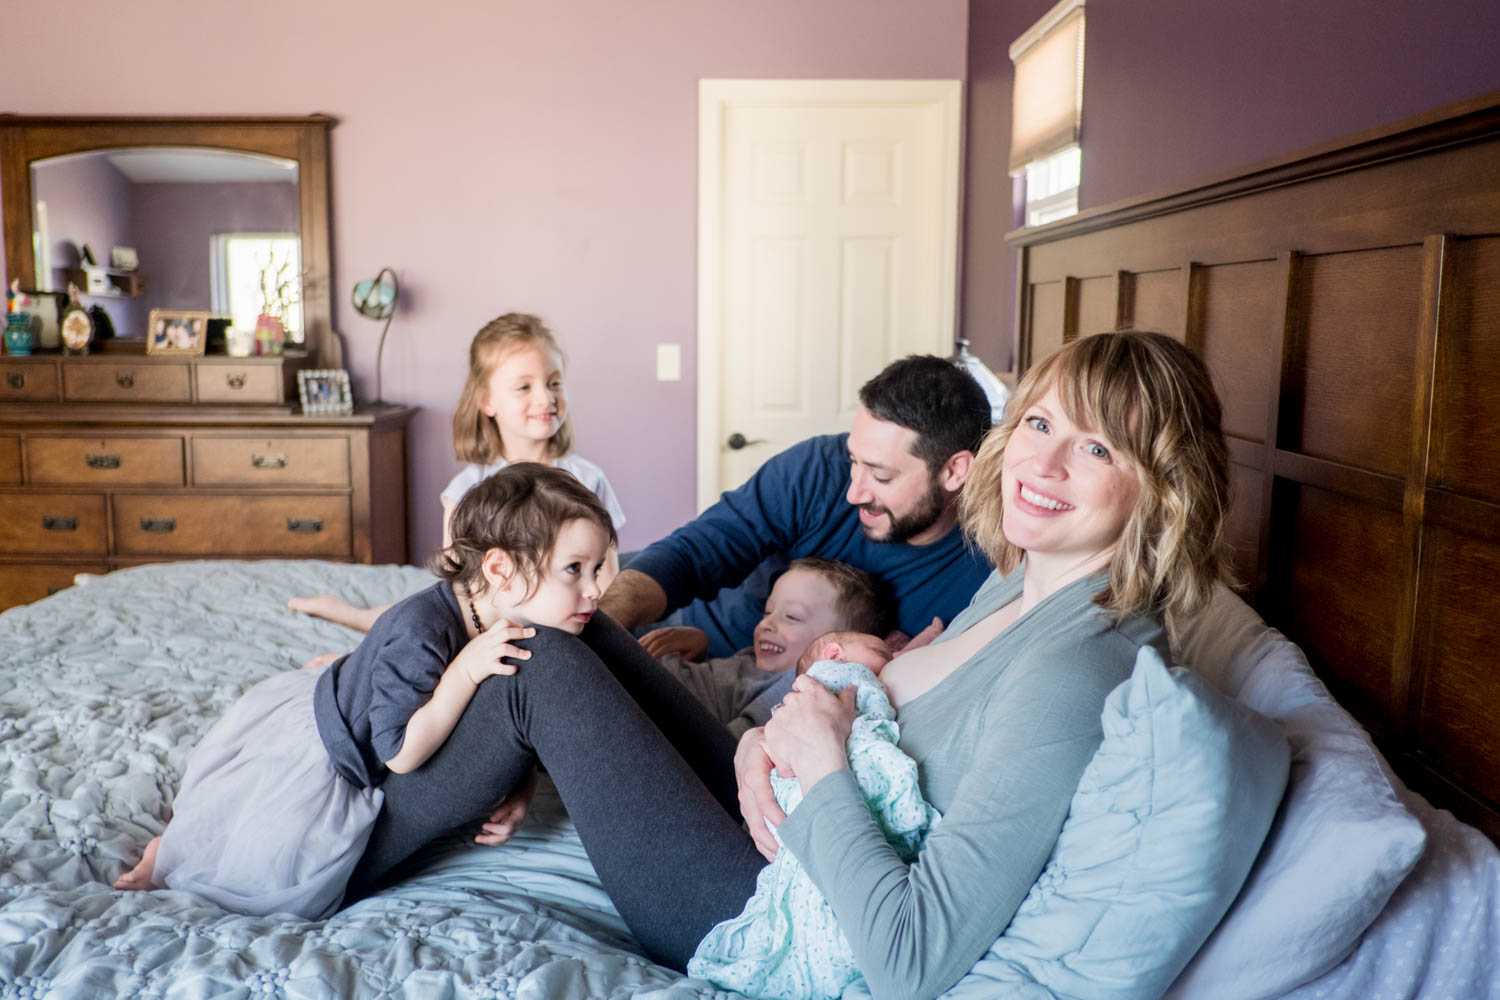 family-with-newborn-on-bed-chicago-newborn-photography--6.jpg